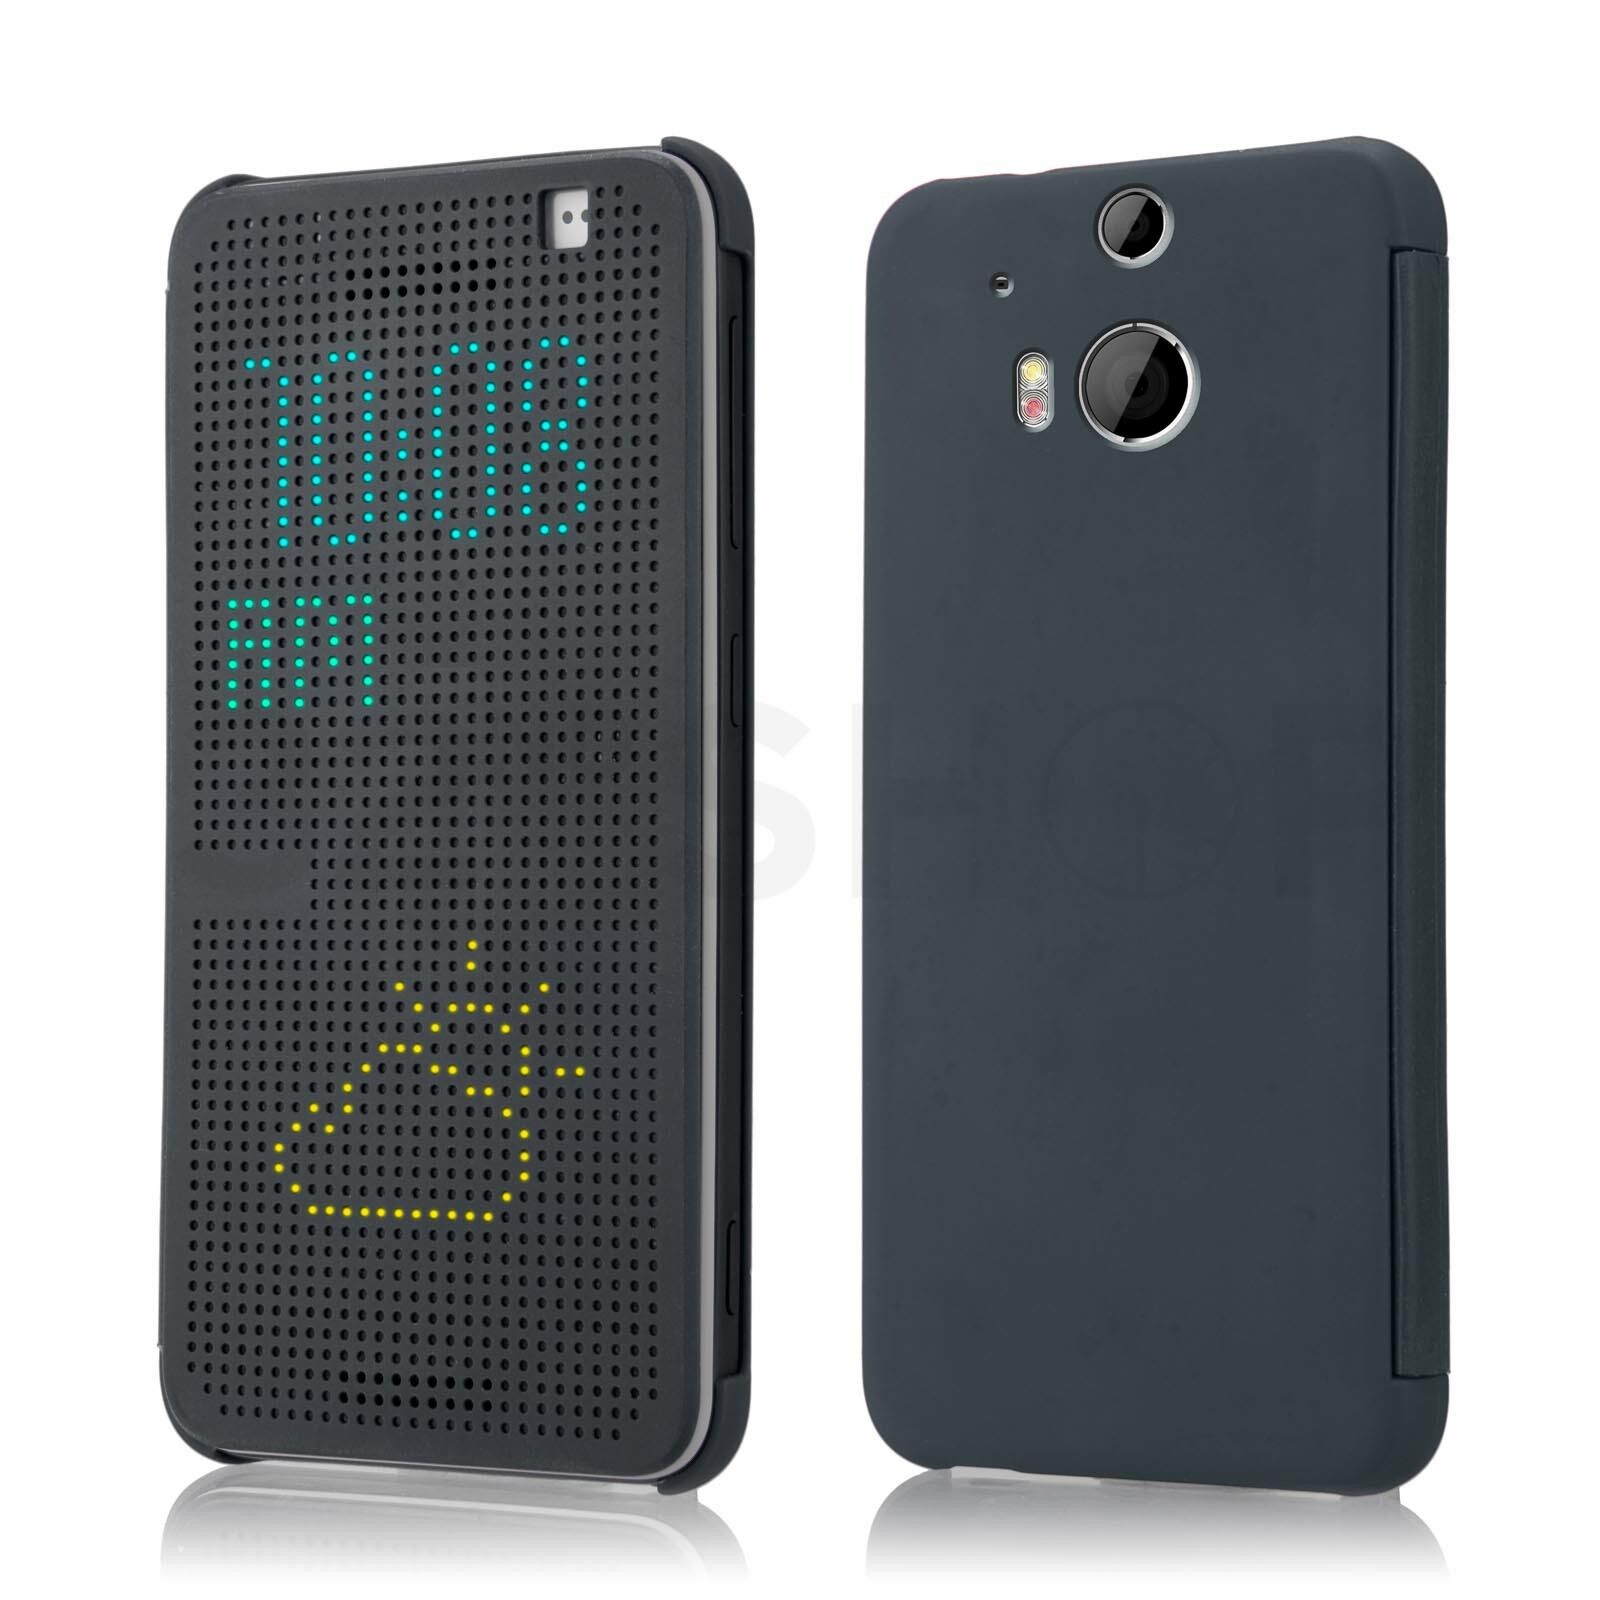 Dot Matrix Display Case Cover For HTC Desire EYE & HTC One ...